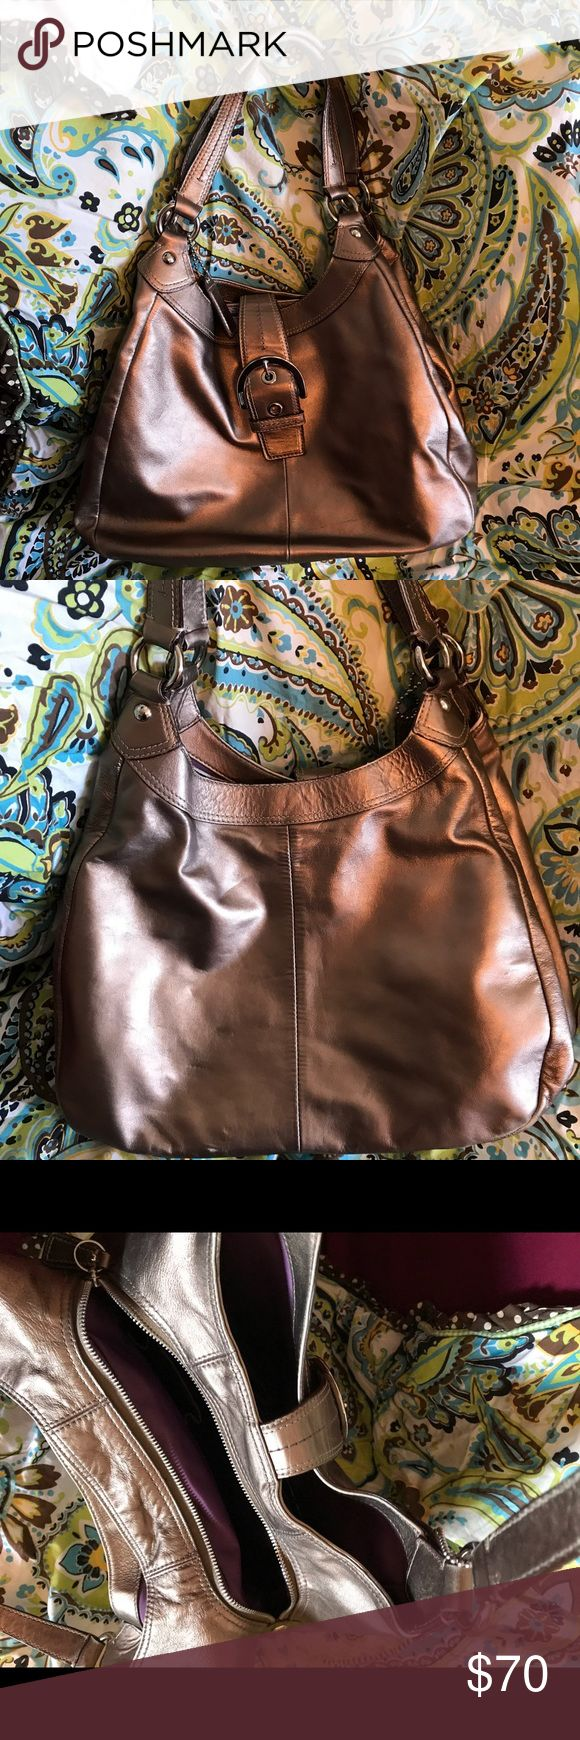 Coach Leather Handbag Pre-owned hand bag as seen in pic Coach Bags Shoulder Bags